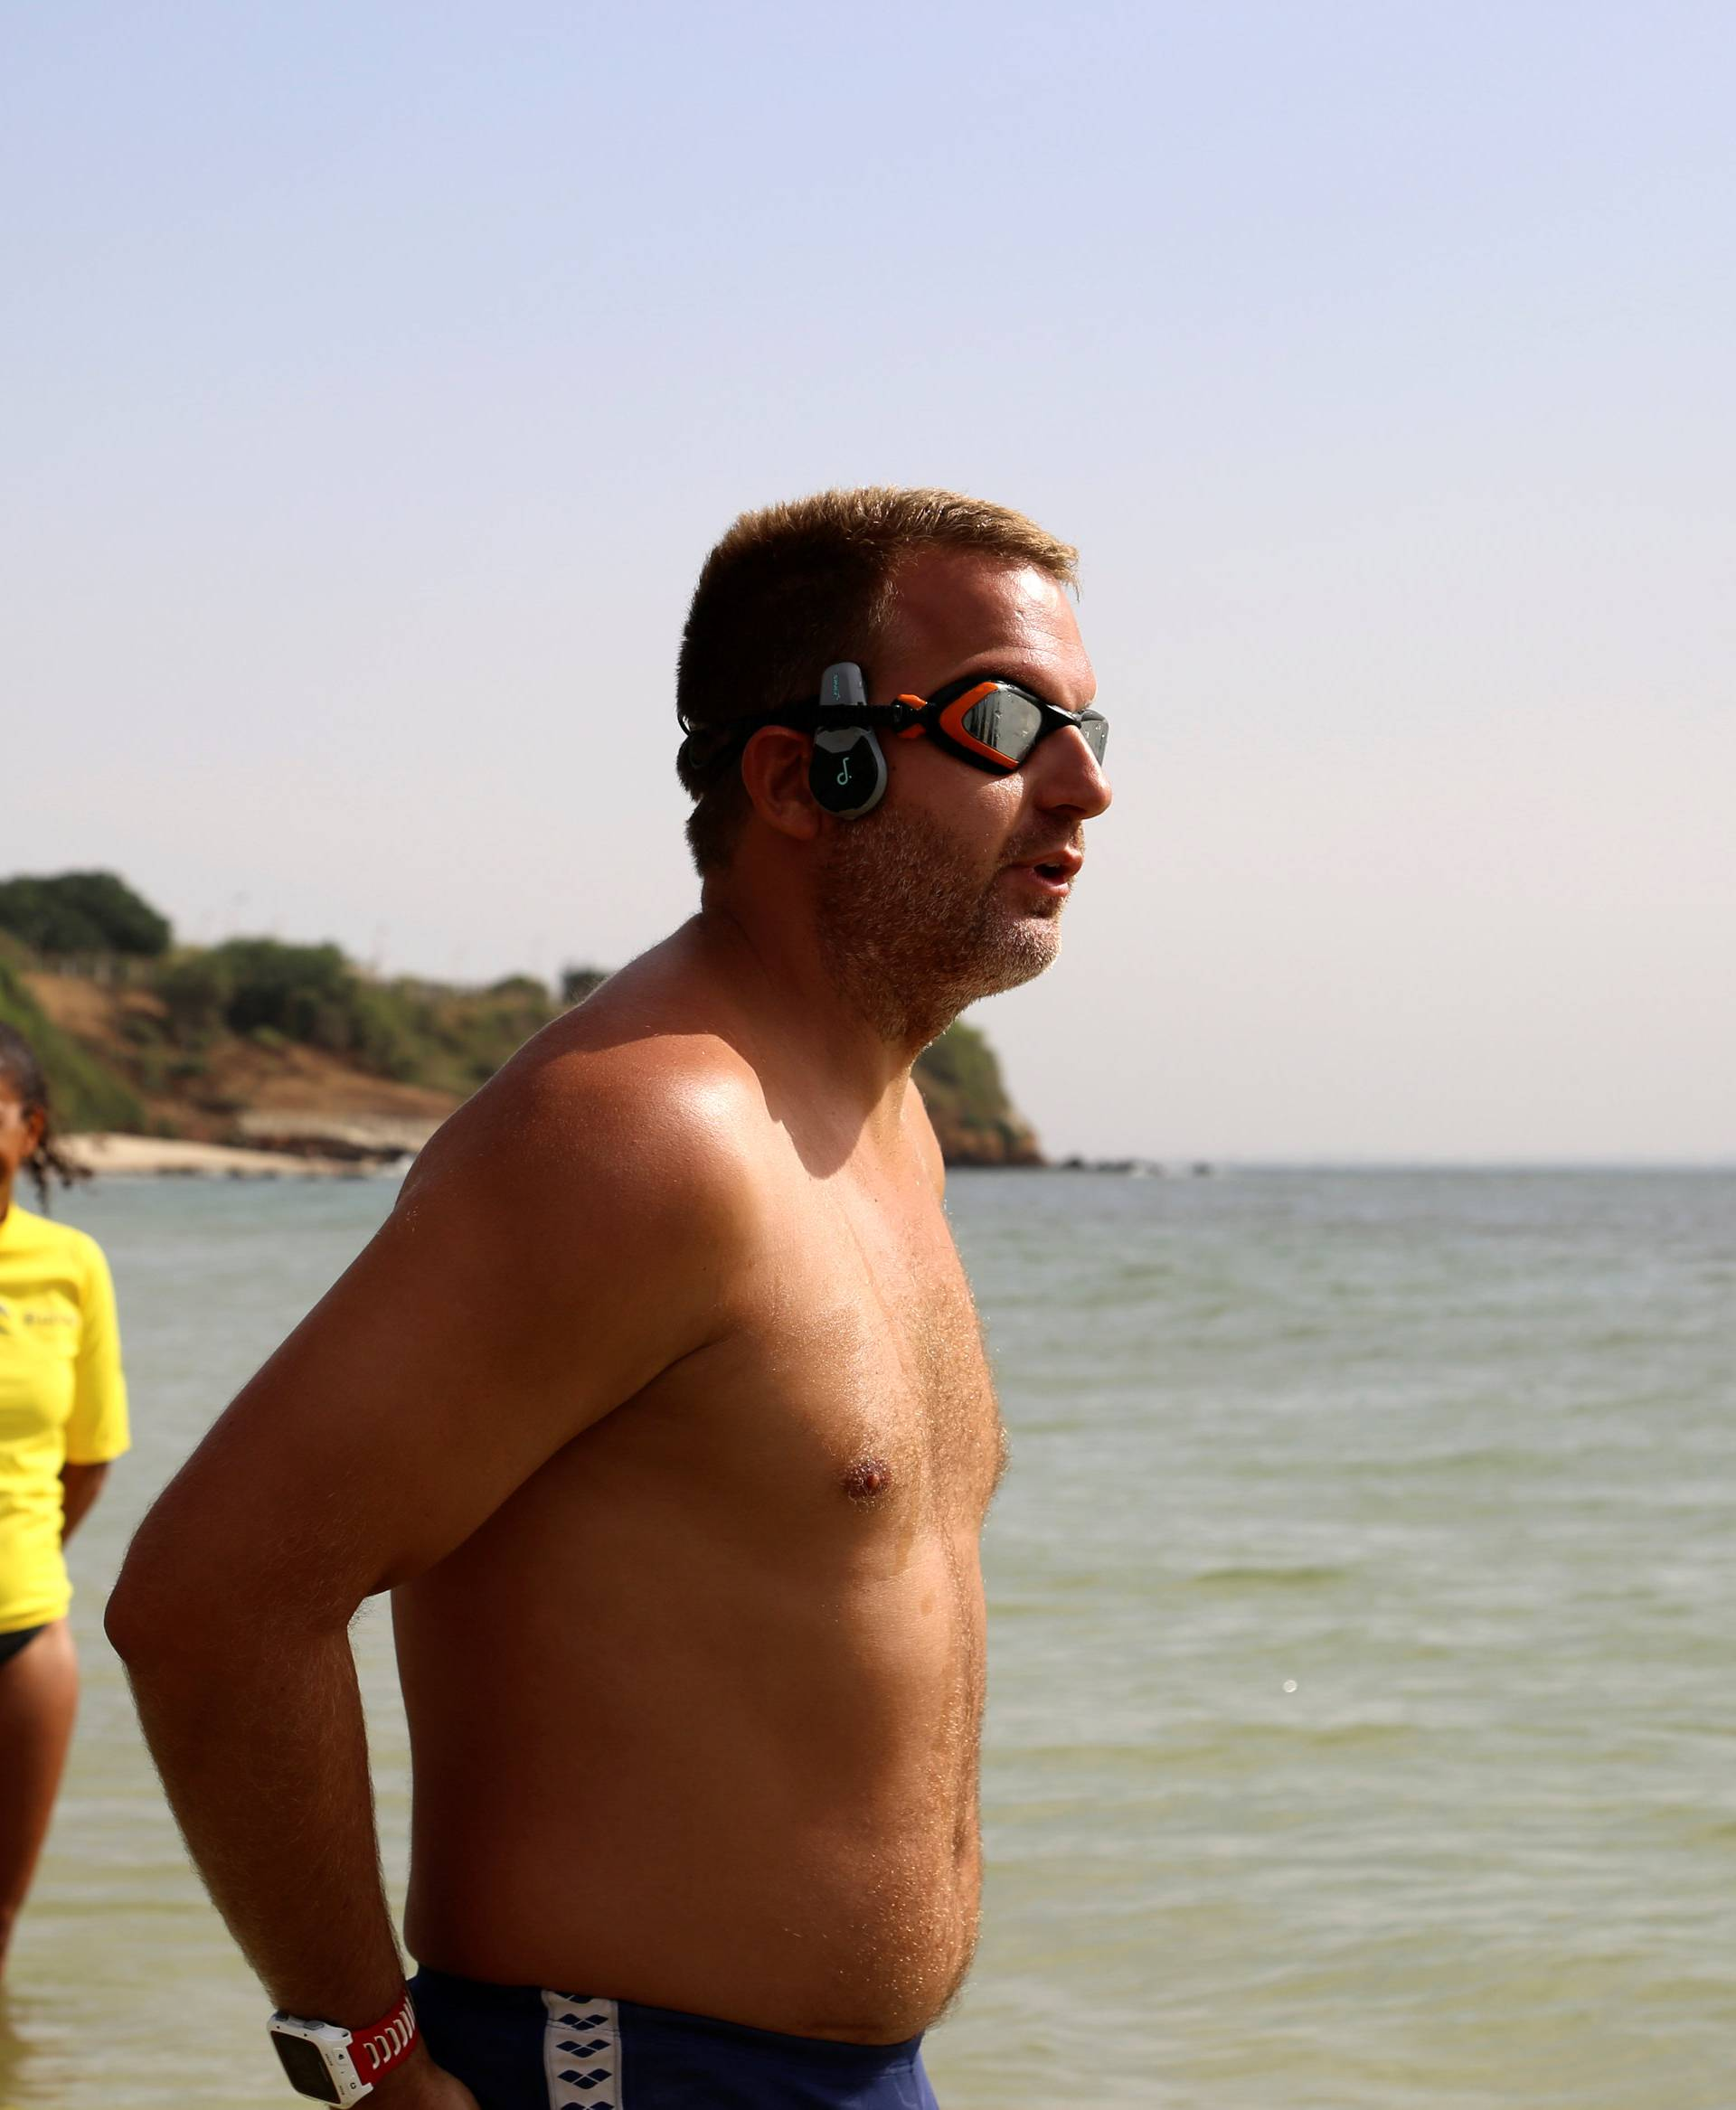 Ben Hooper prepares to begin an expedition to become the first swimmer to make a verified crossing of the Atlantic Ocean in Dakar